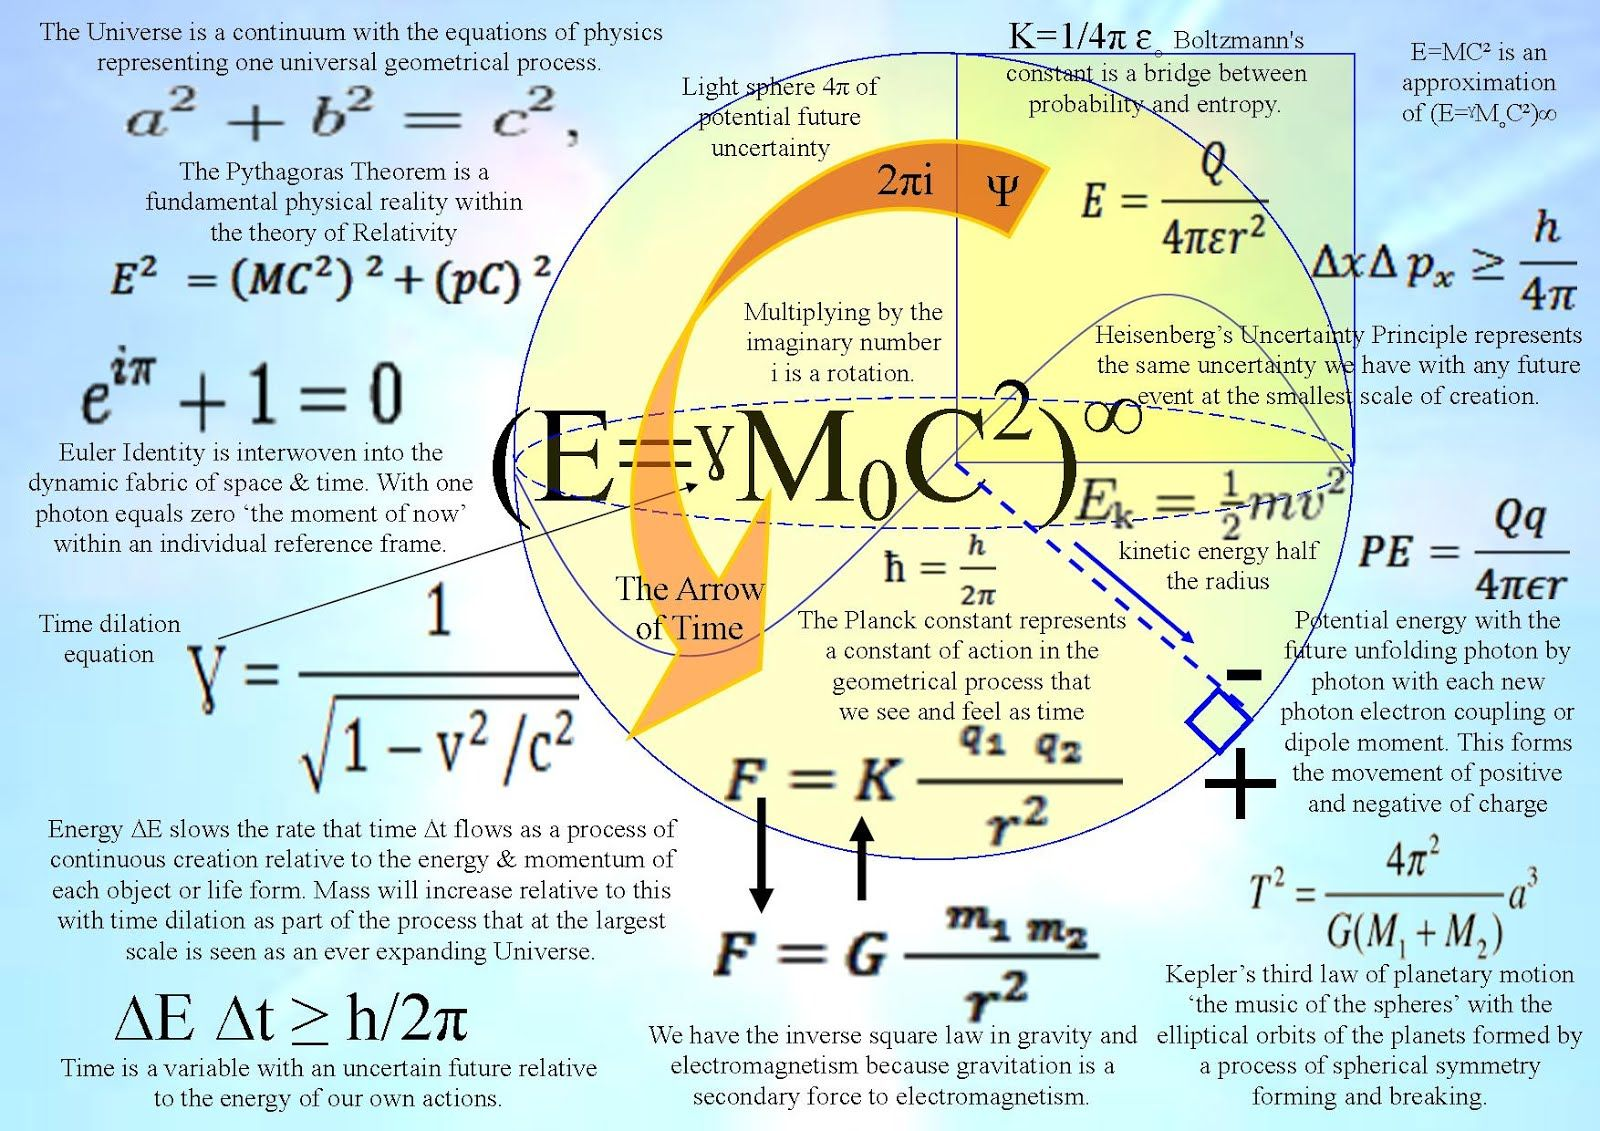 The Equations Of Physics Represent One Geometrical Process